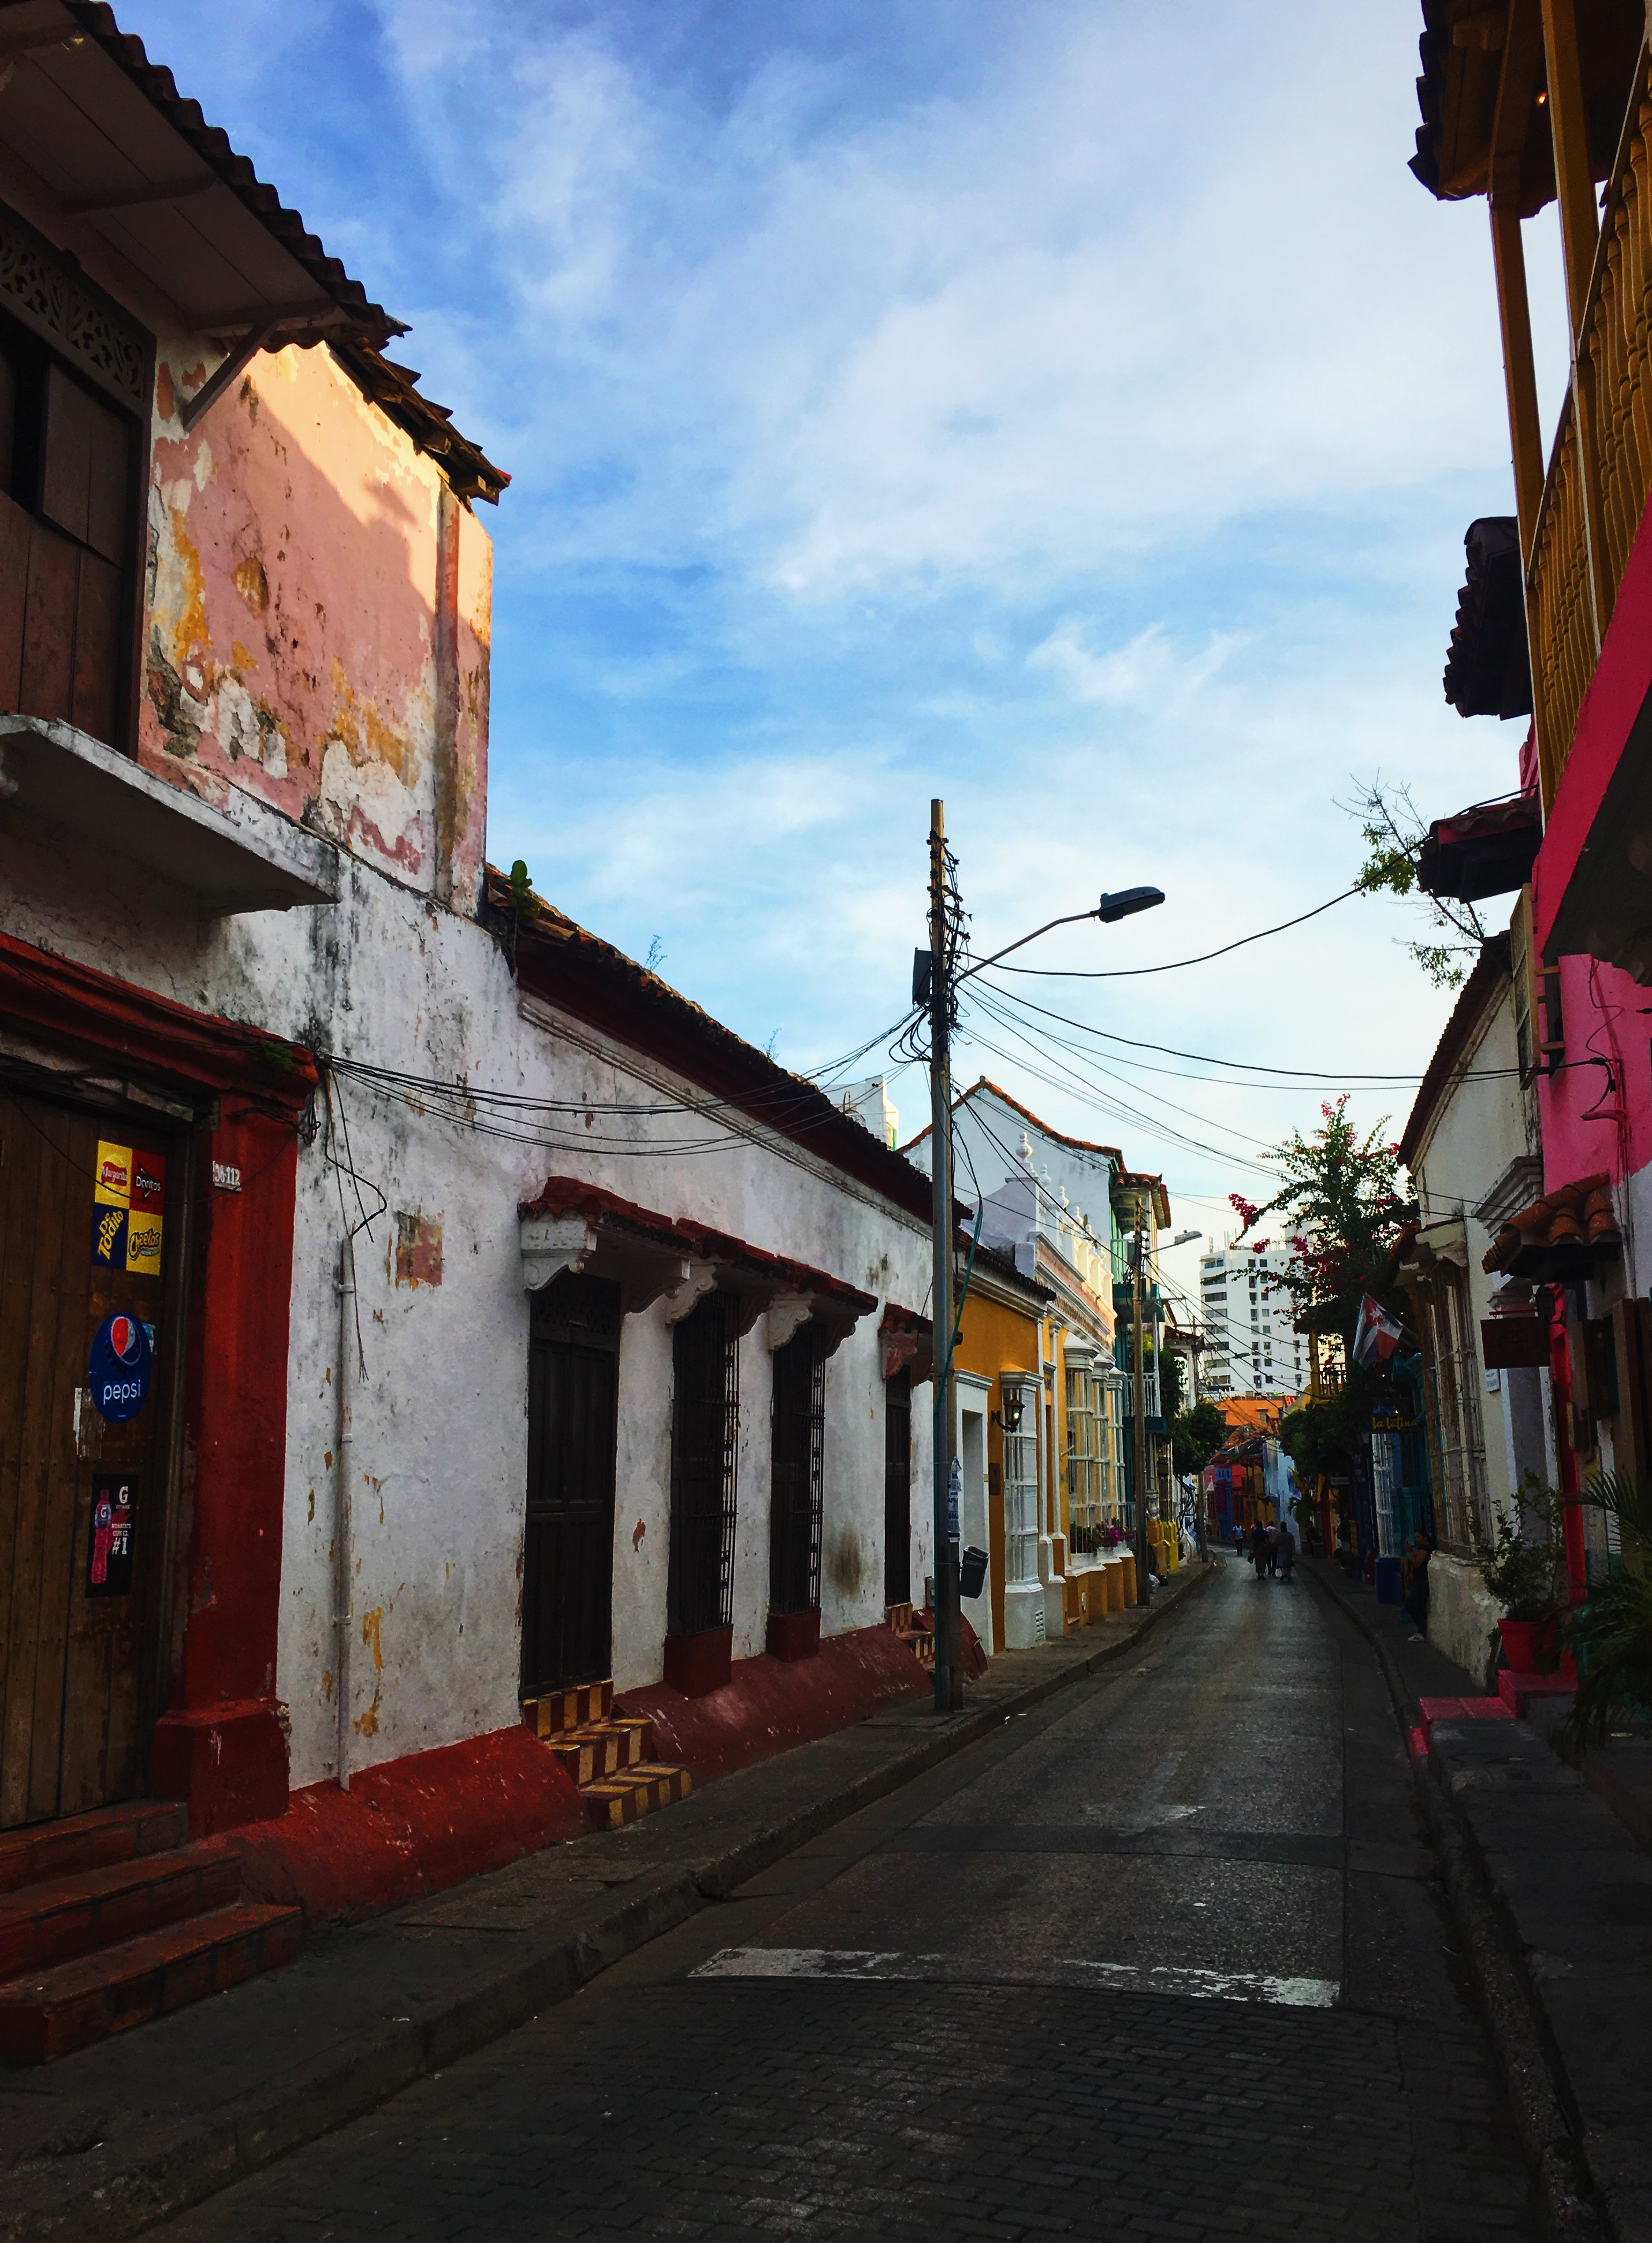 lcm-liveclothesminded-colombia-cartagena-walled city-old town